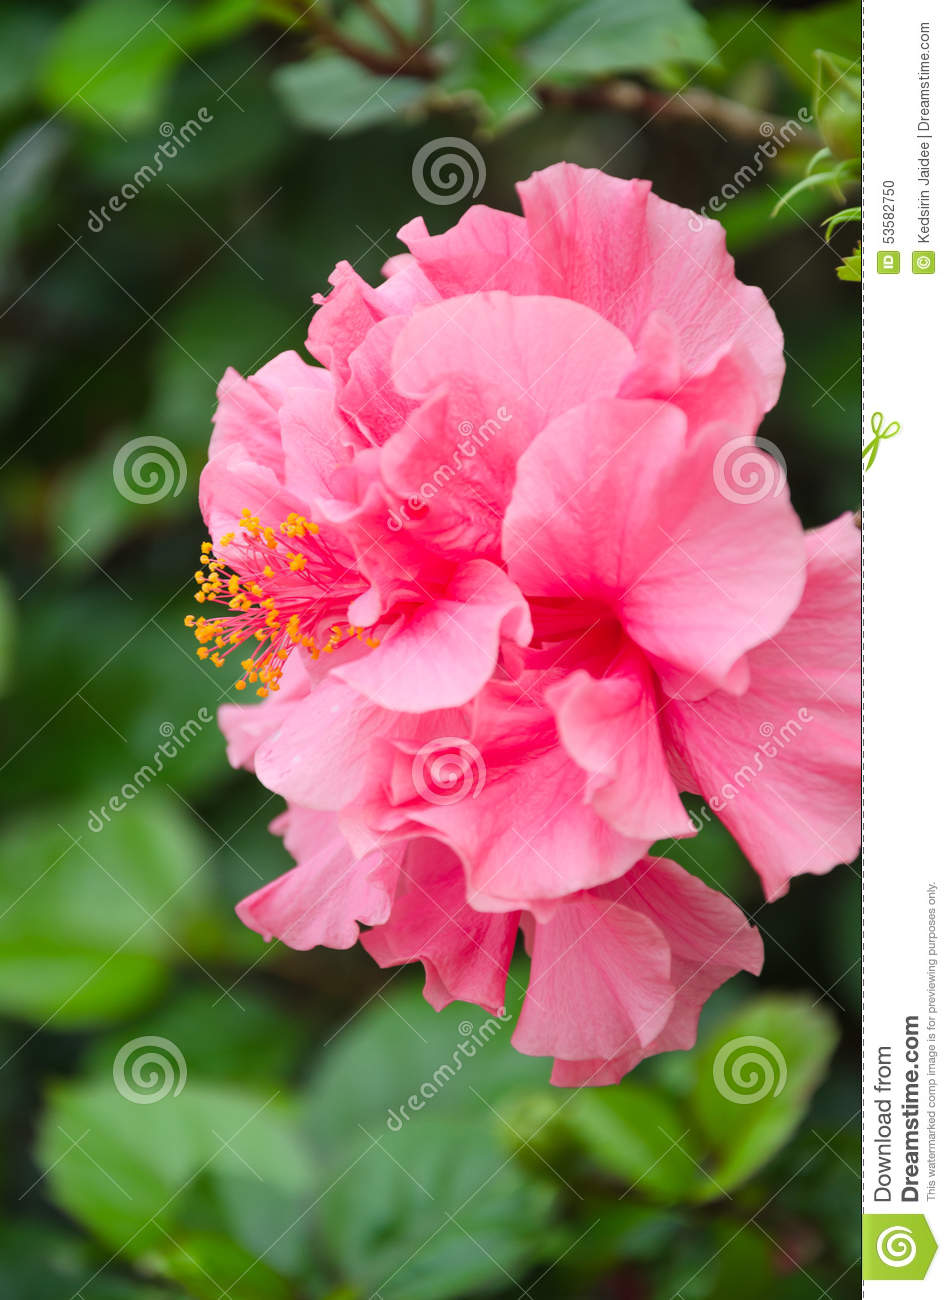 Double hibiscus flower stock photo image of decoration 53582750 double hibiscus flower decoration leaf izmirmasajfo Image collections